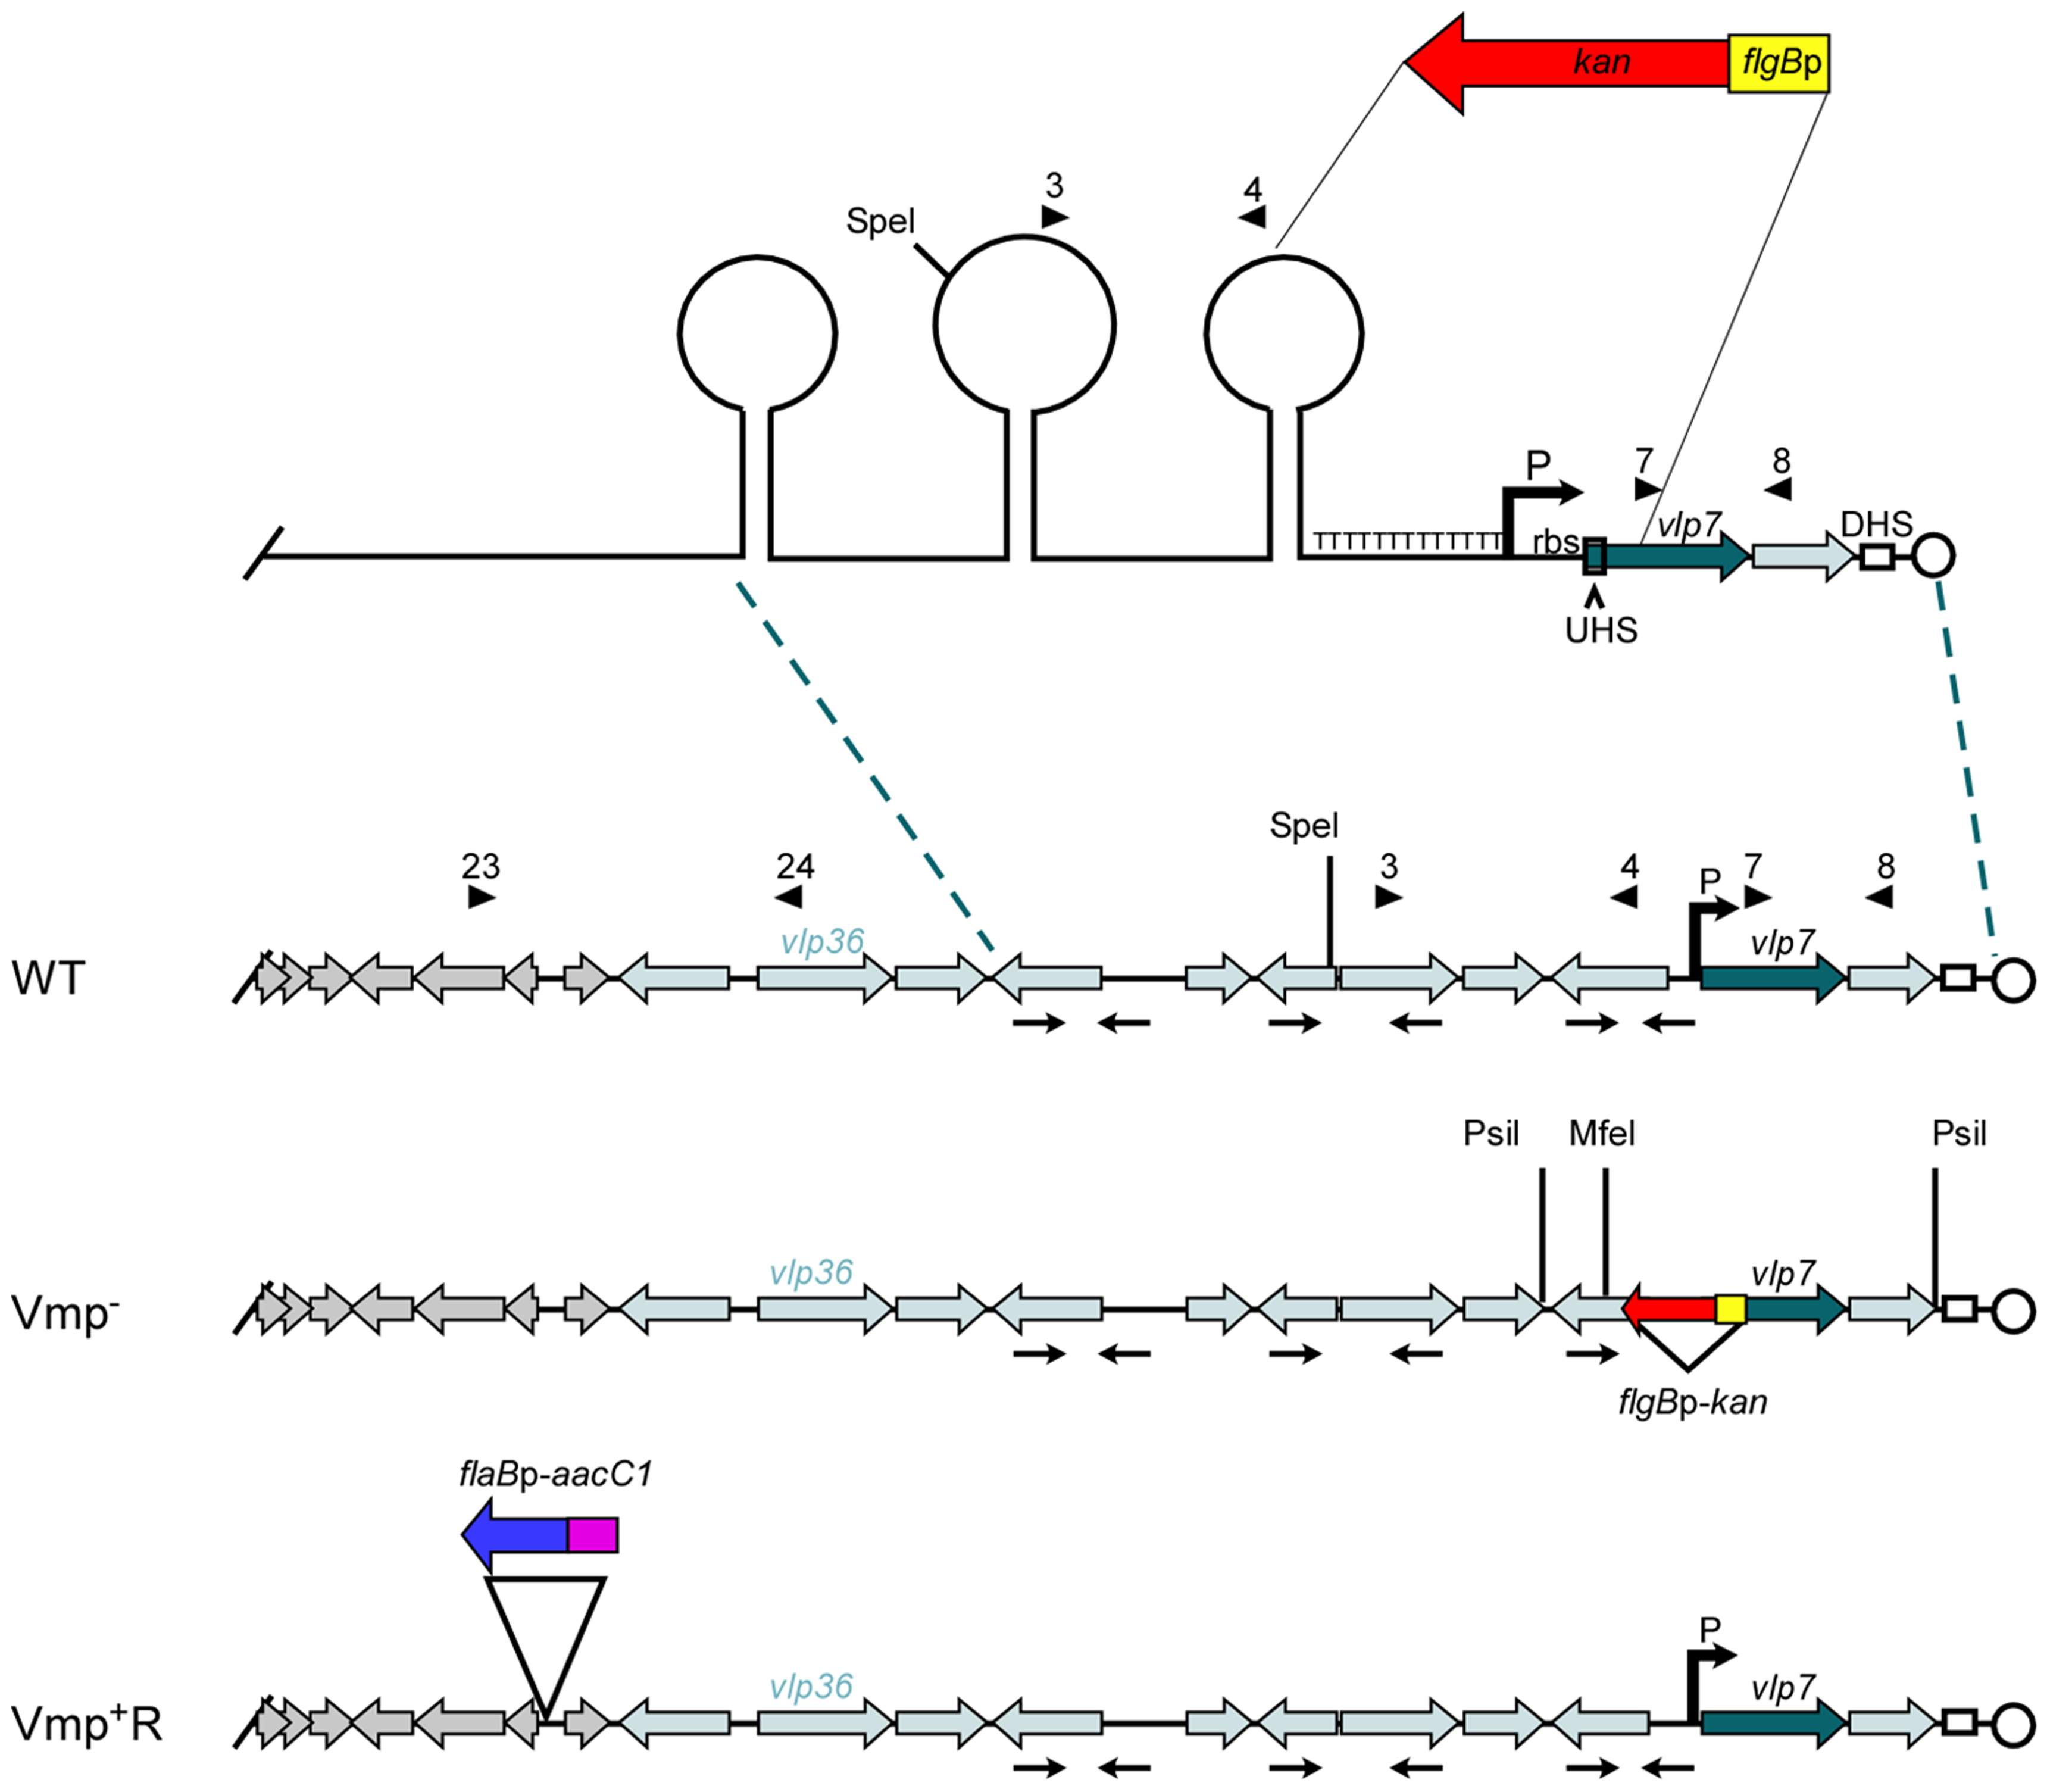 Diagram of the lp28-1 plasmids for the wild-type, Vmp<sup>−</sup> mutant and reconstituted Vmp<sup>+</sup>R strains.